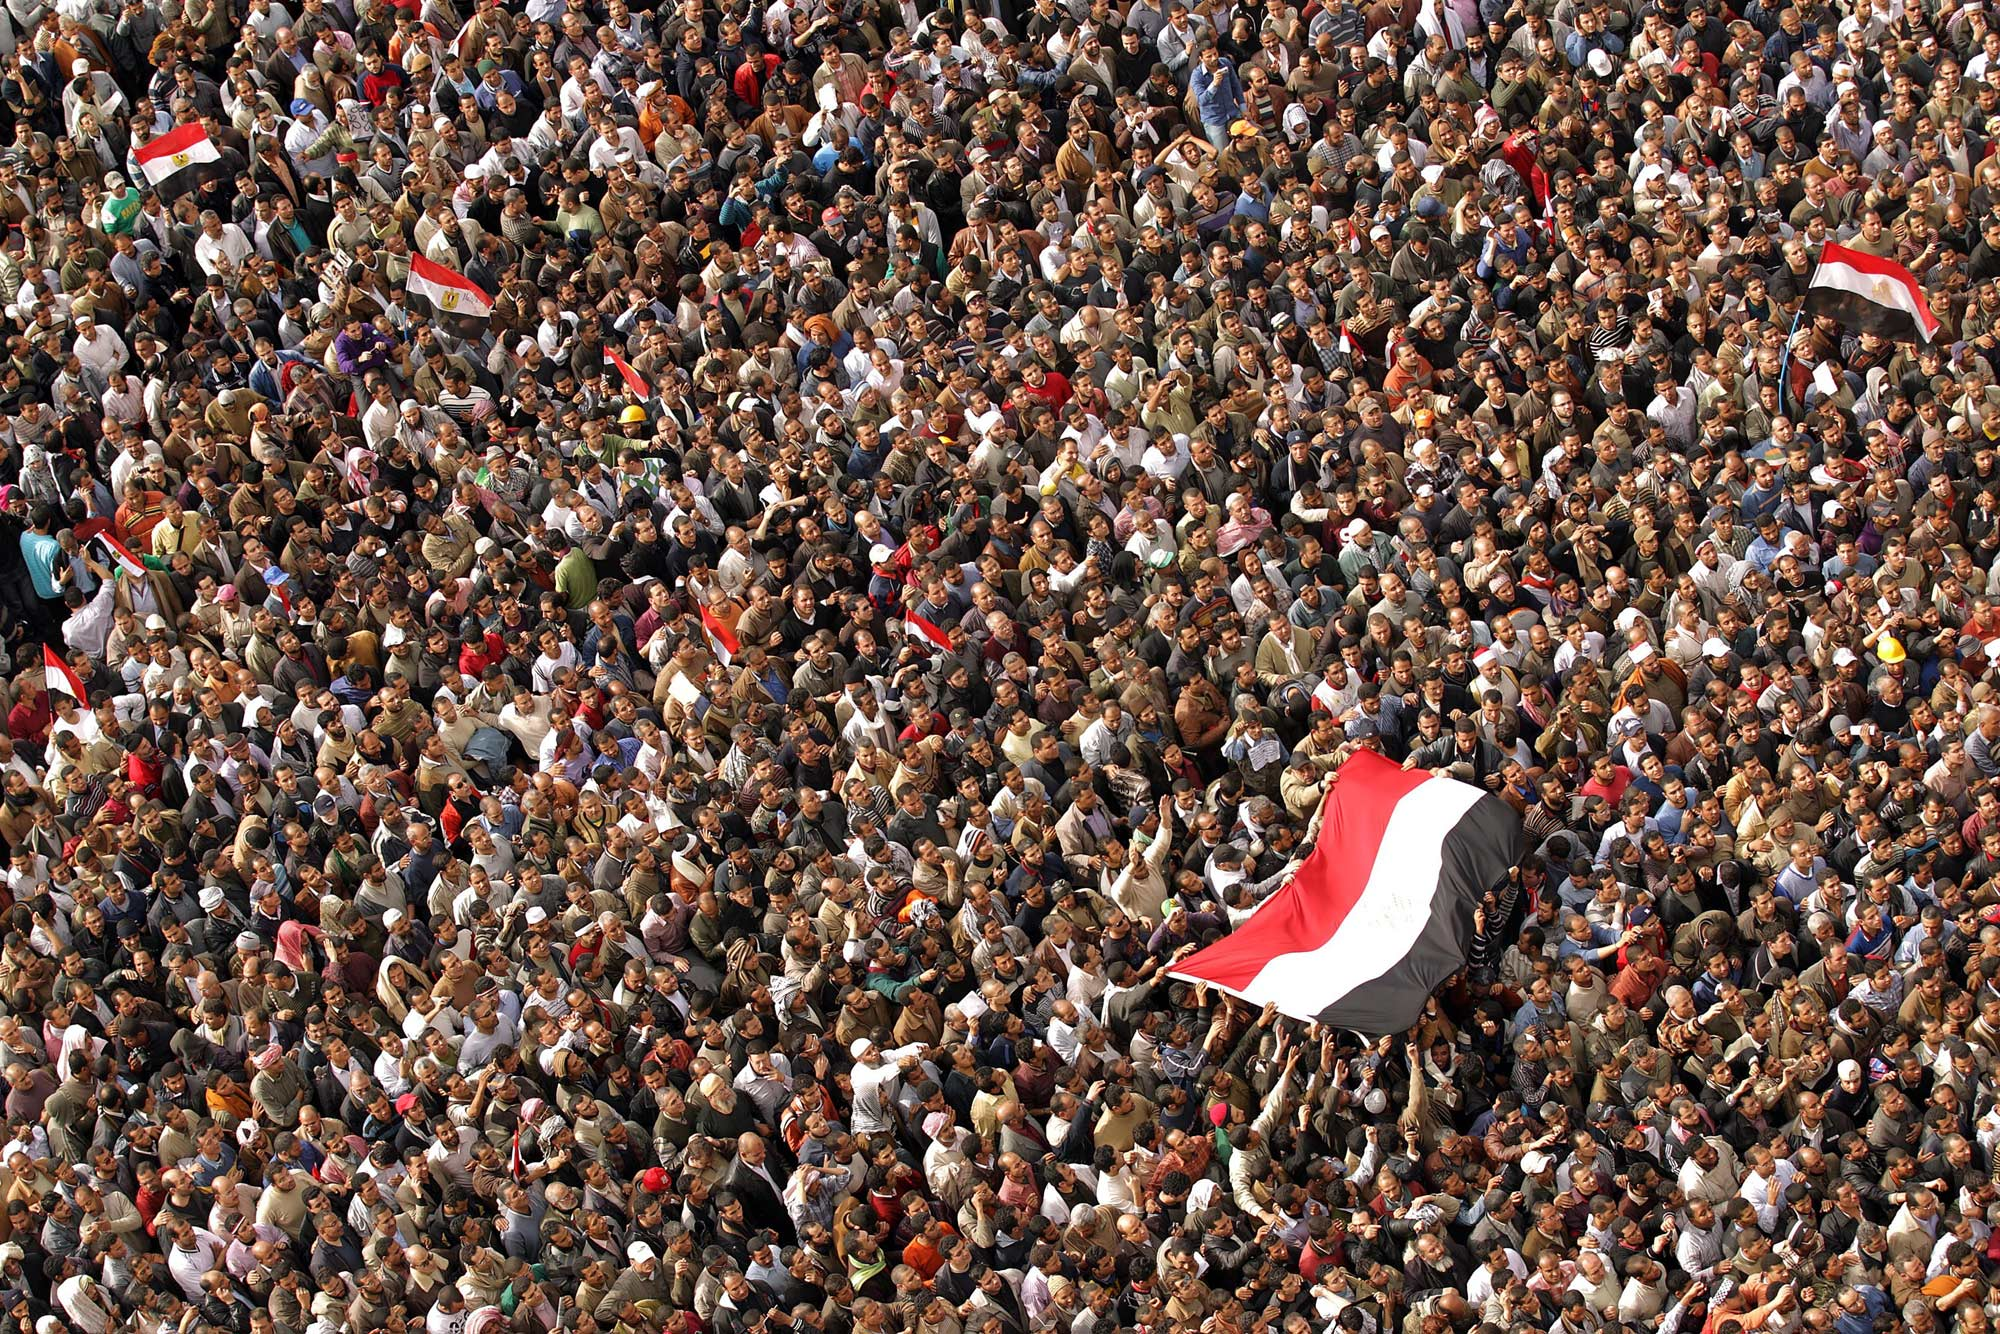 democracy in essay essay on democracy in essay on the democracy in essaydemocracy the economist democracy a view from cairo short essay on judicial activism